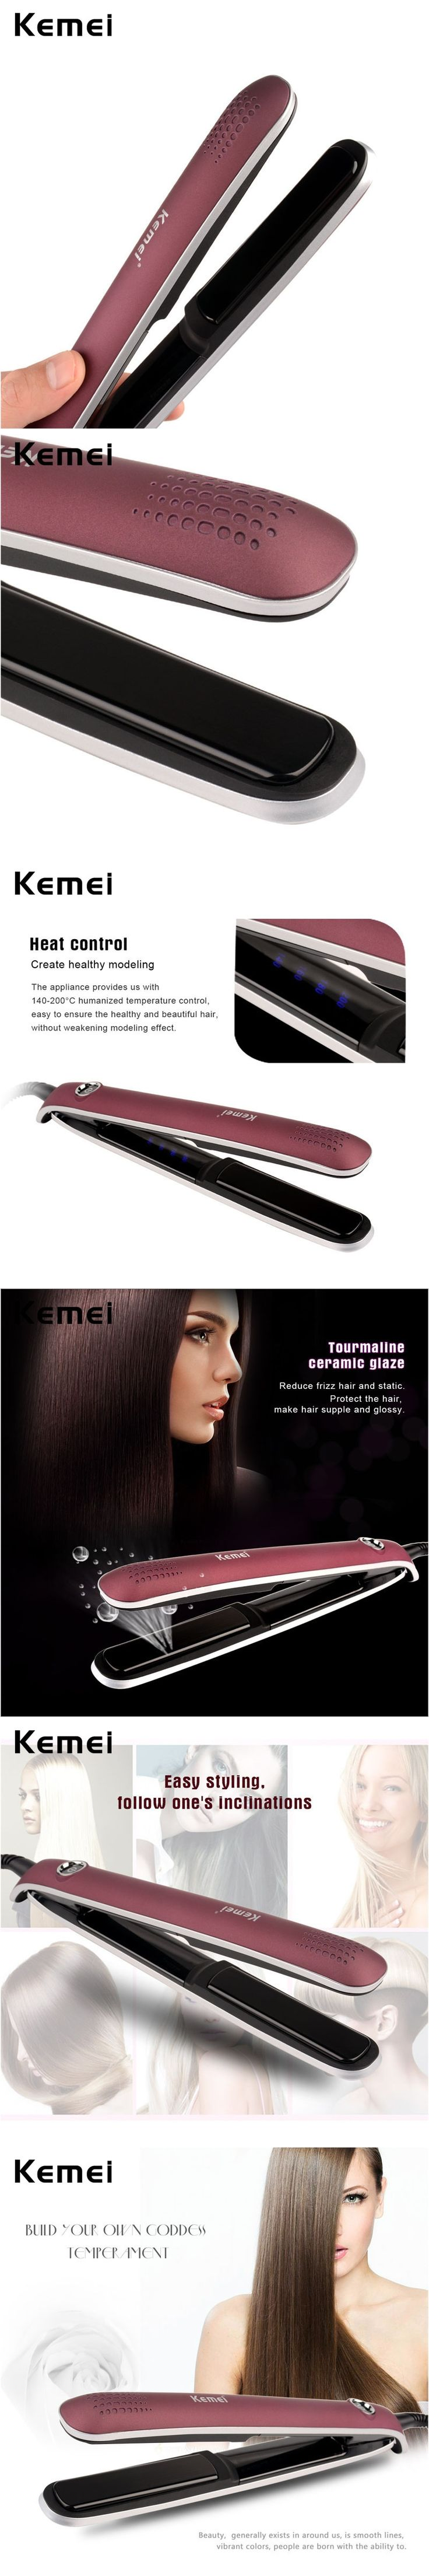 110-240V Flat Iron Kemei Fast heating Professional Hair Straightener Straightening Irons Styling Tools brosse lissante Wholesale